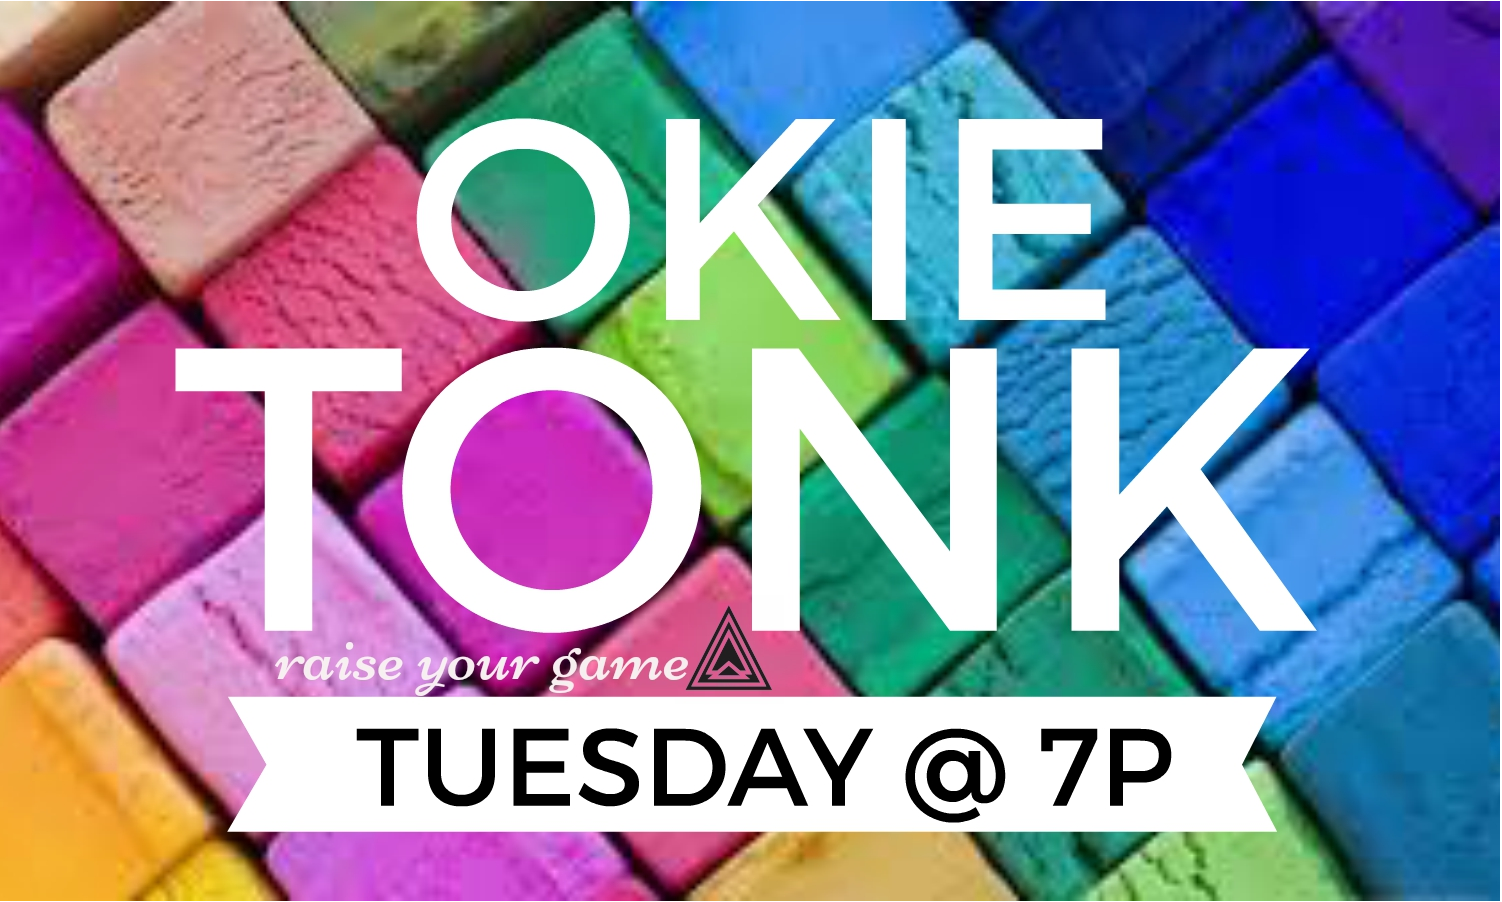 Okie Tonk Cafe. Moore, OK. Tuesdays @ 7 PM.